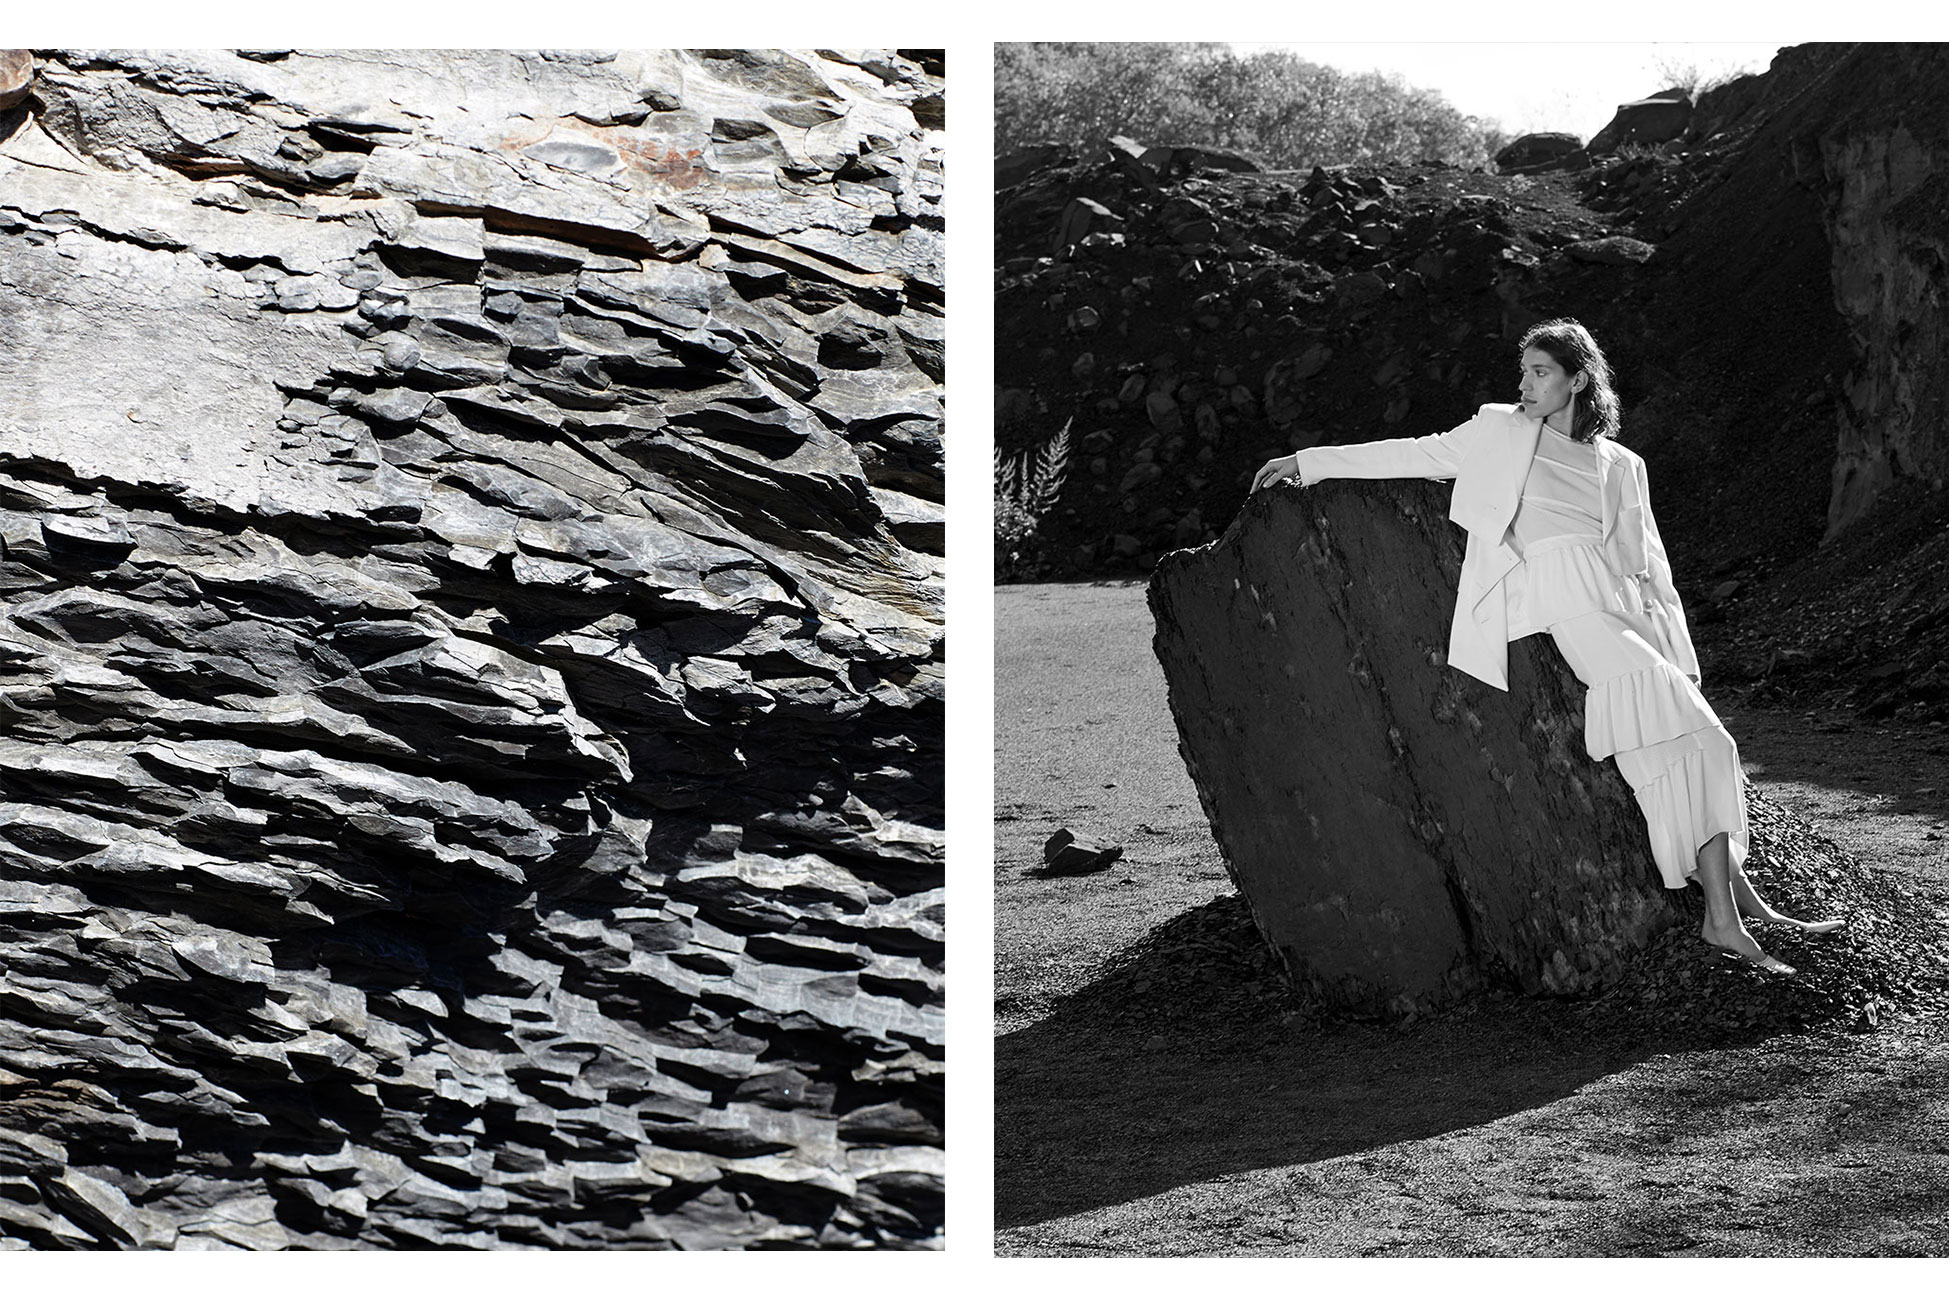 Colored/black and white photos by Manolo Campion for MONROWE Magazine styled by Carolina Orrico